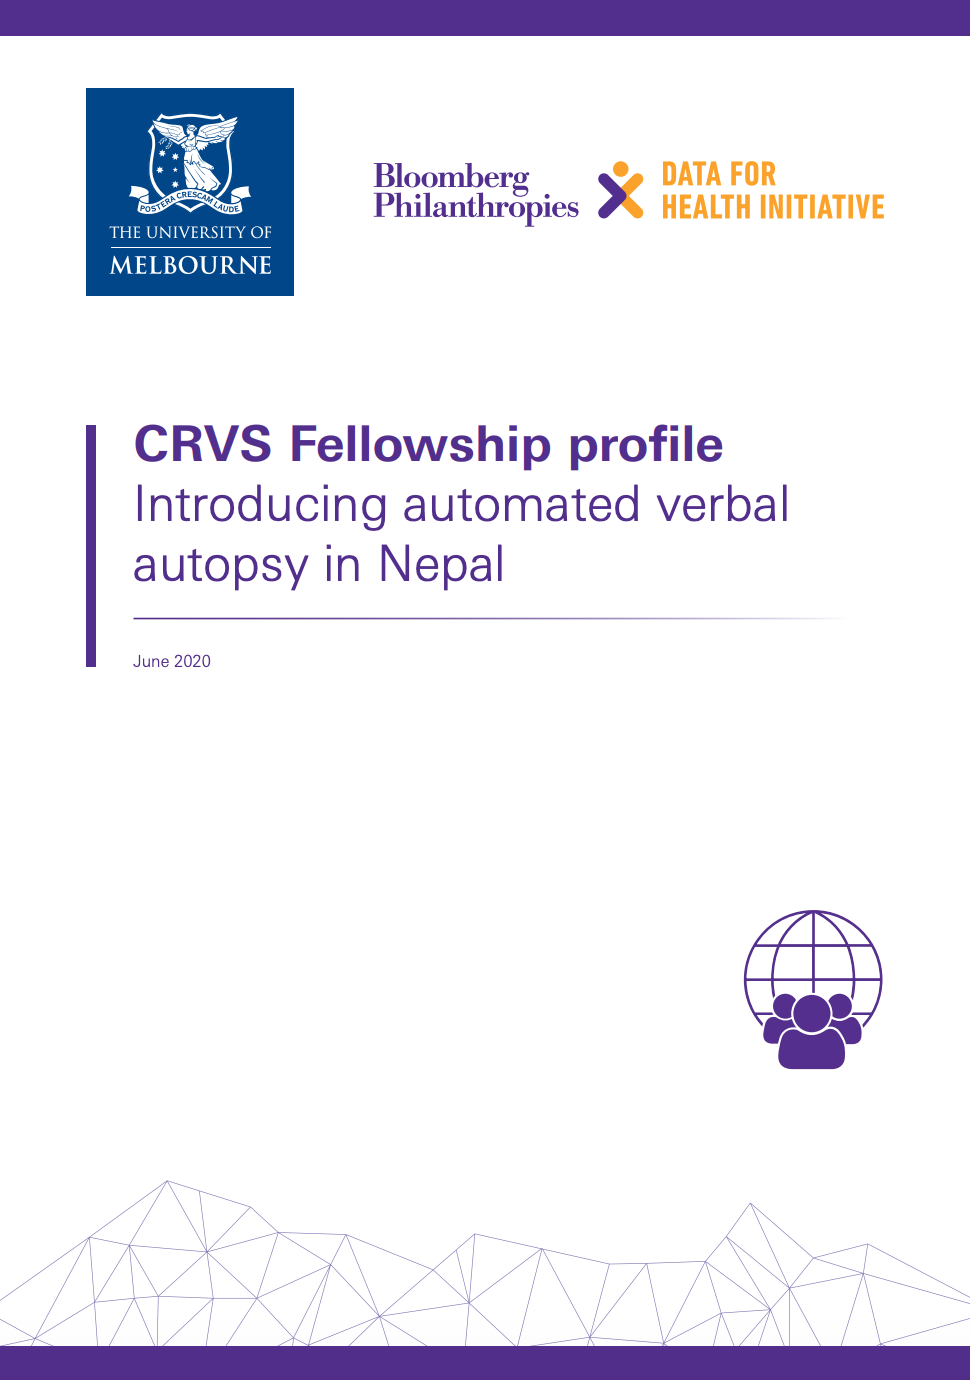 CRVS Fellowship profile Introducing automated verbal autopsy in Nepal thumbnail